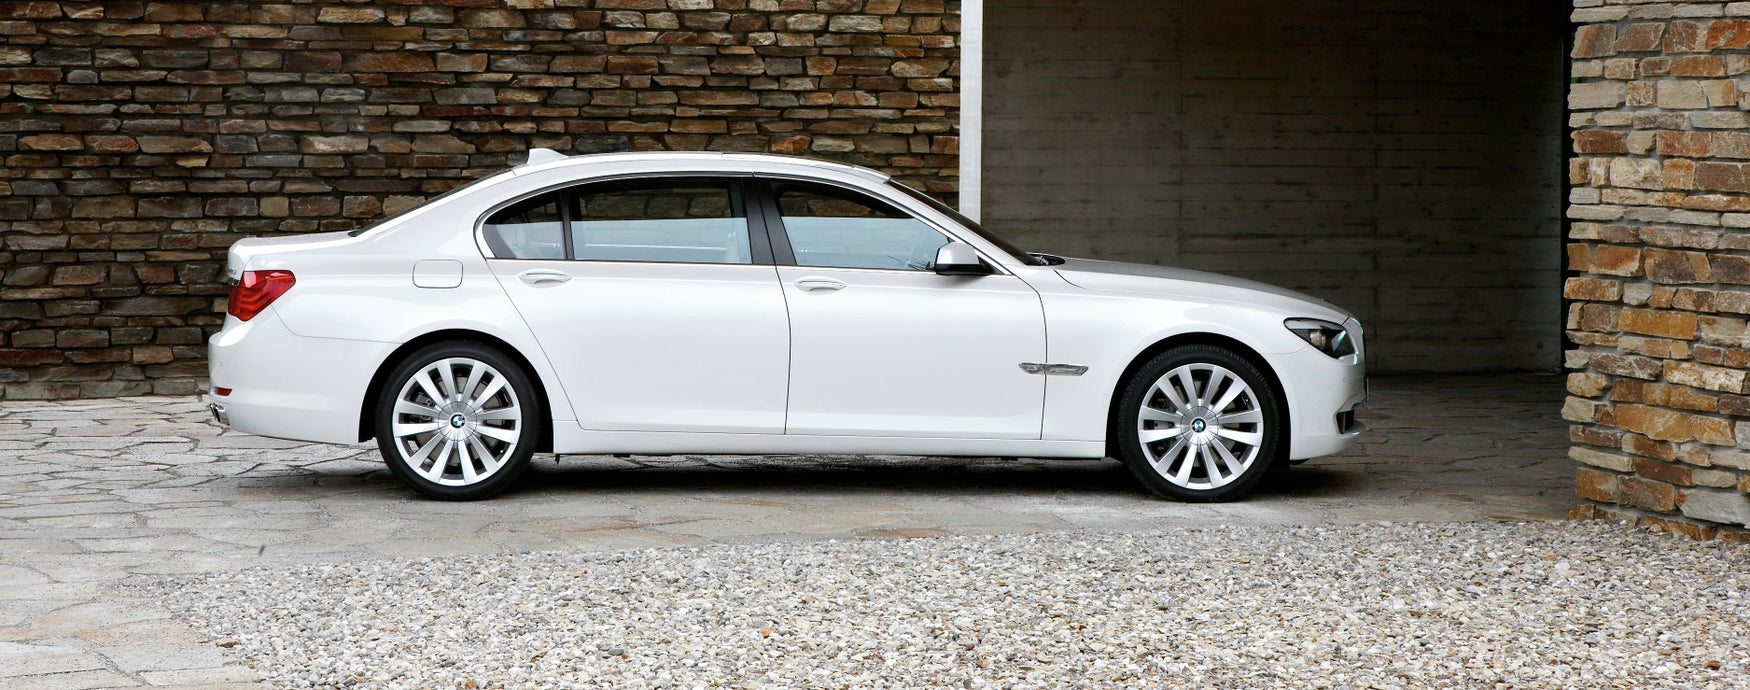 BMW 7 Series side profile